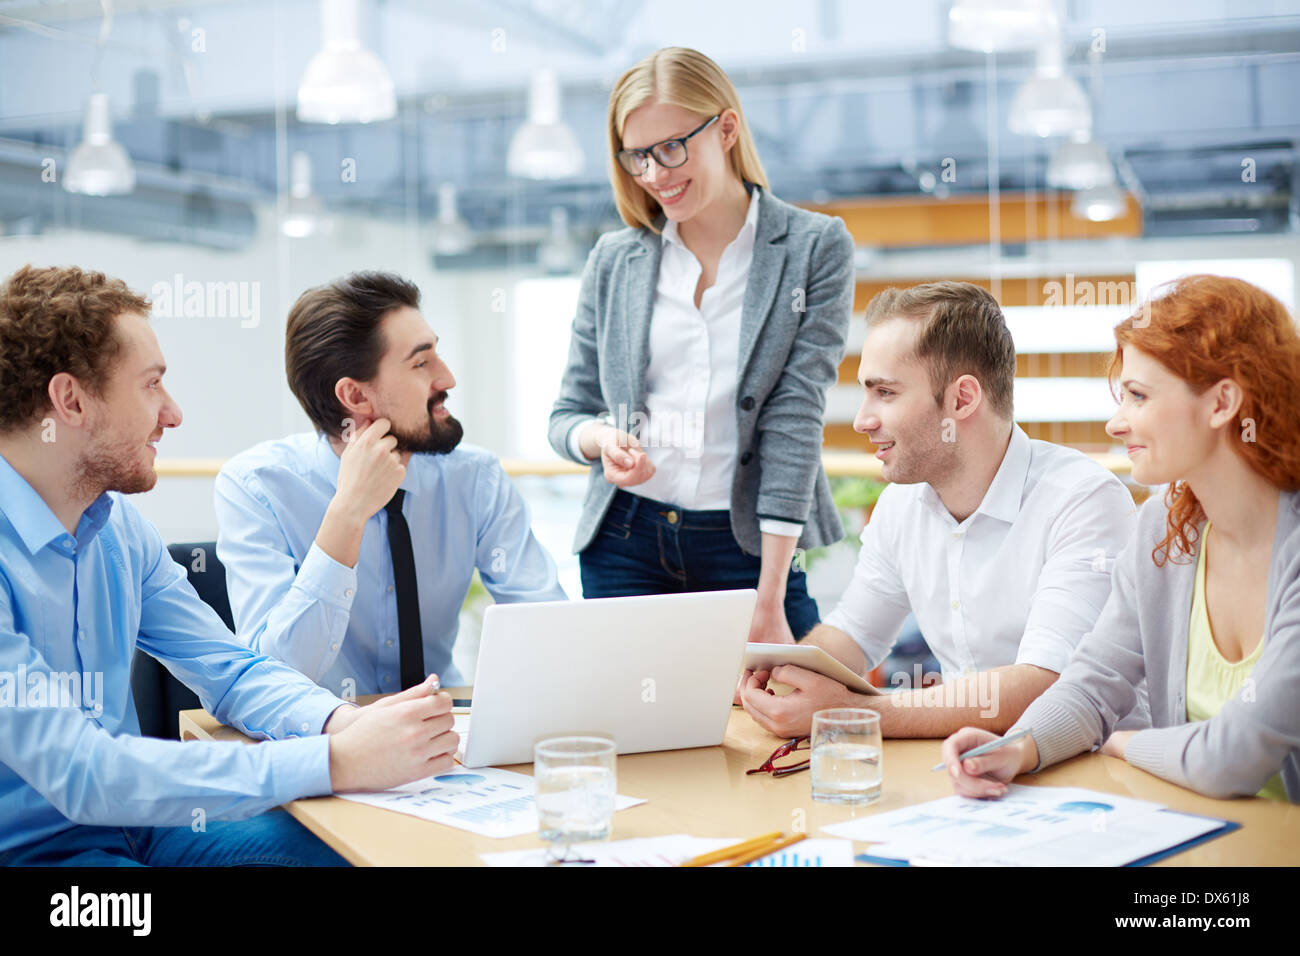 Close-knit business team approving his colleague's idea about company's development - Stock Image